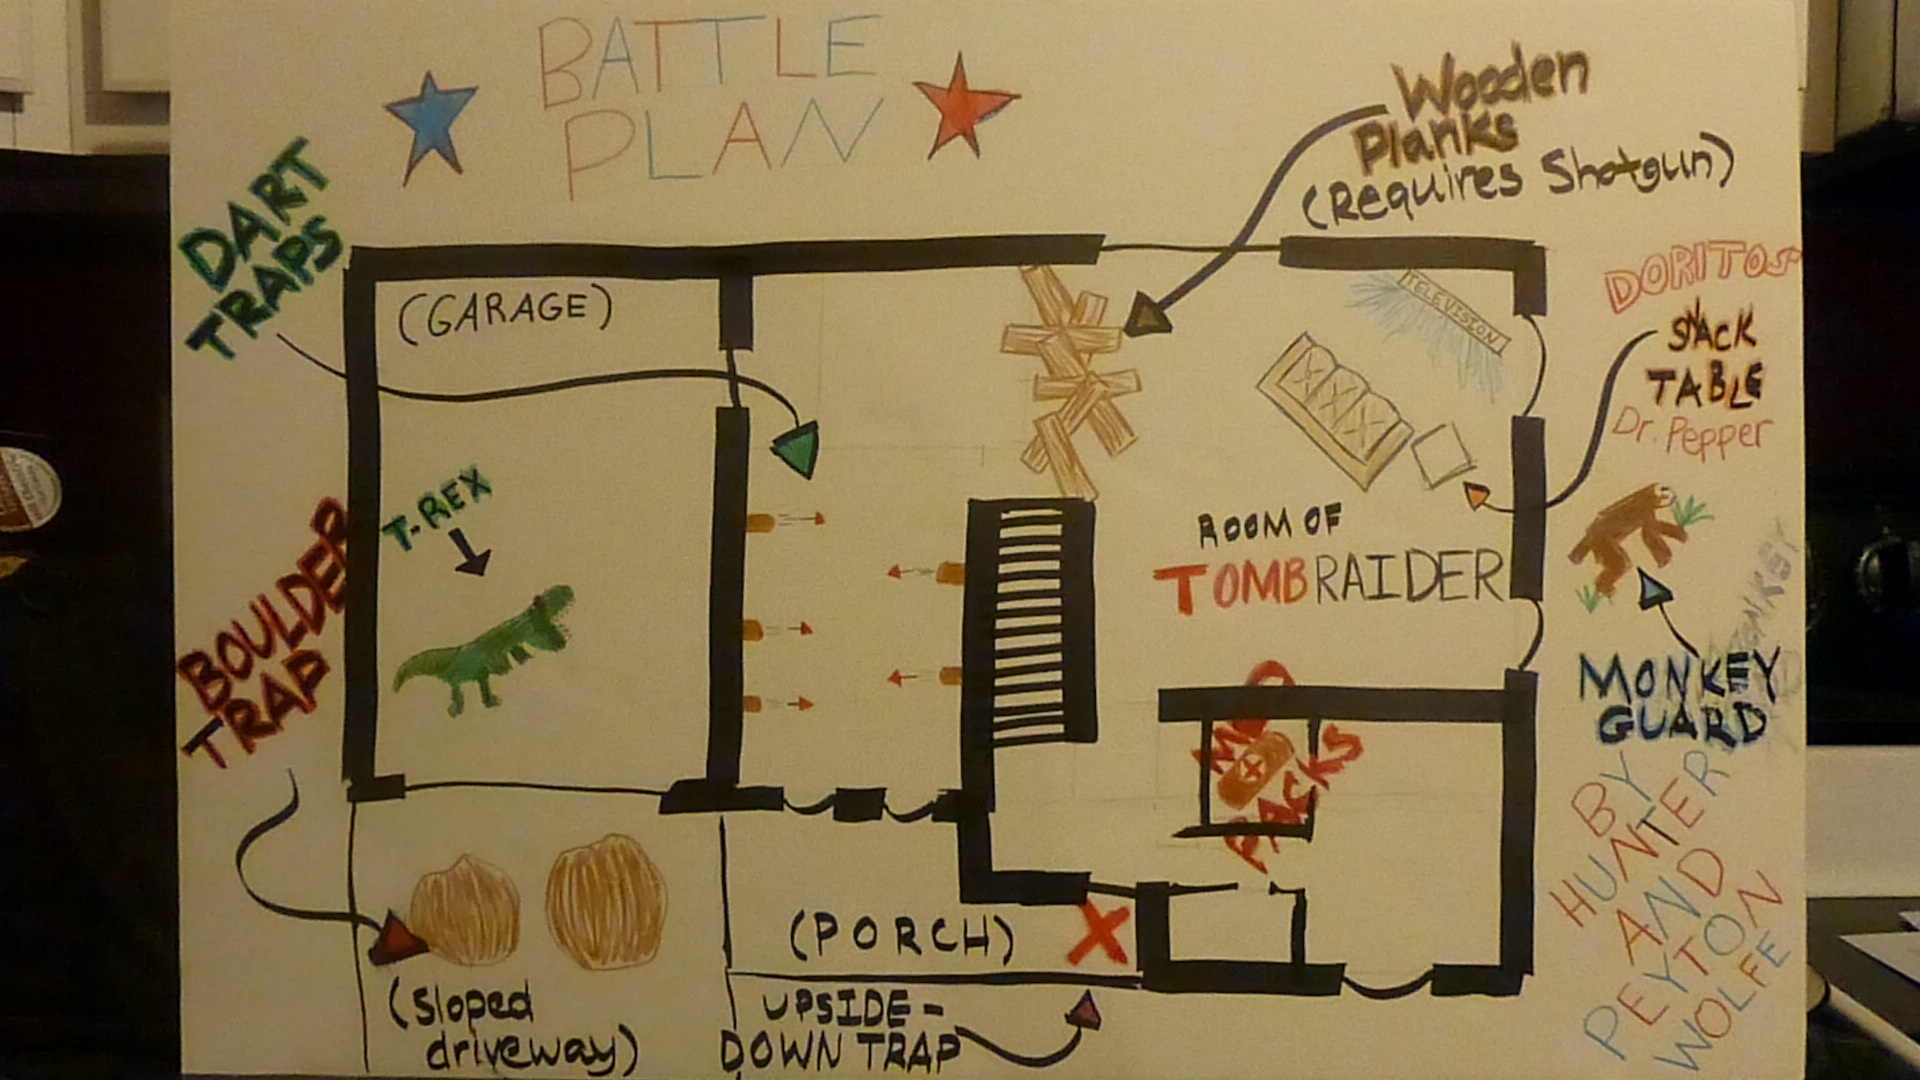 Home alone battle plan scene